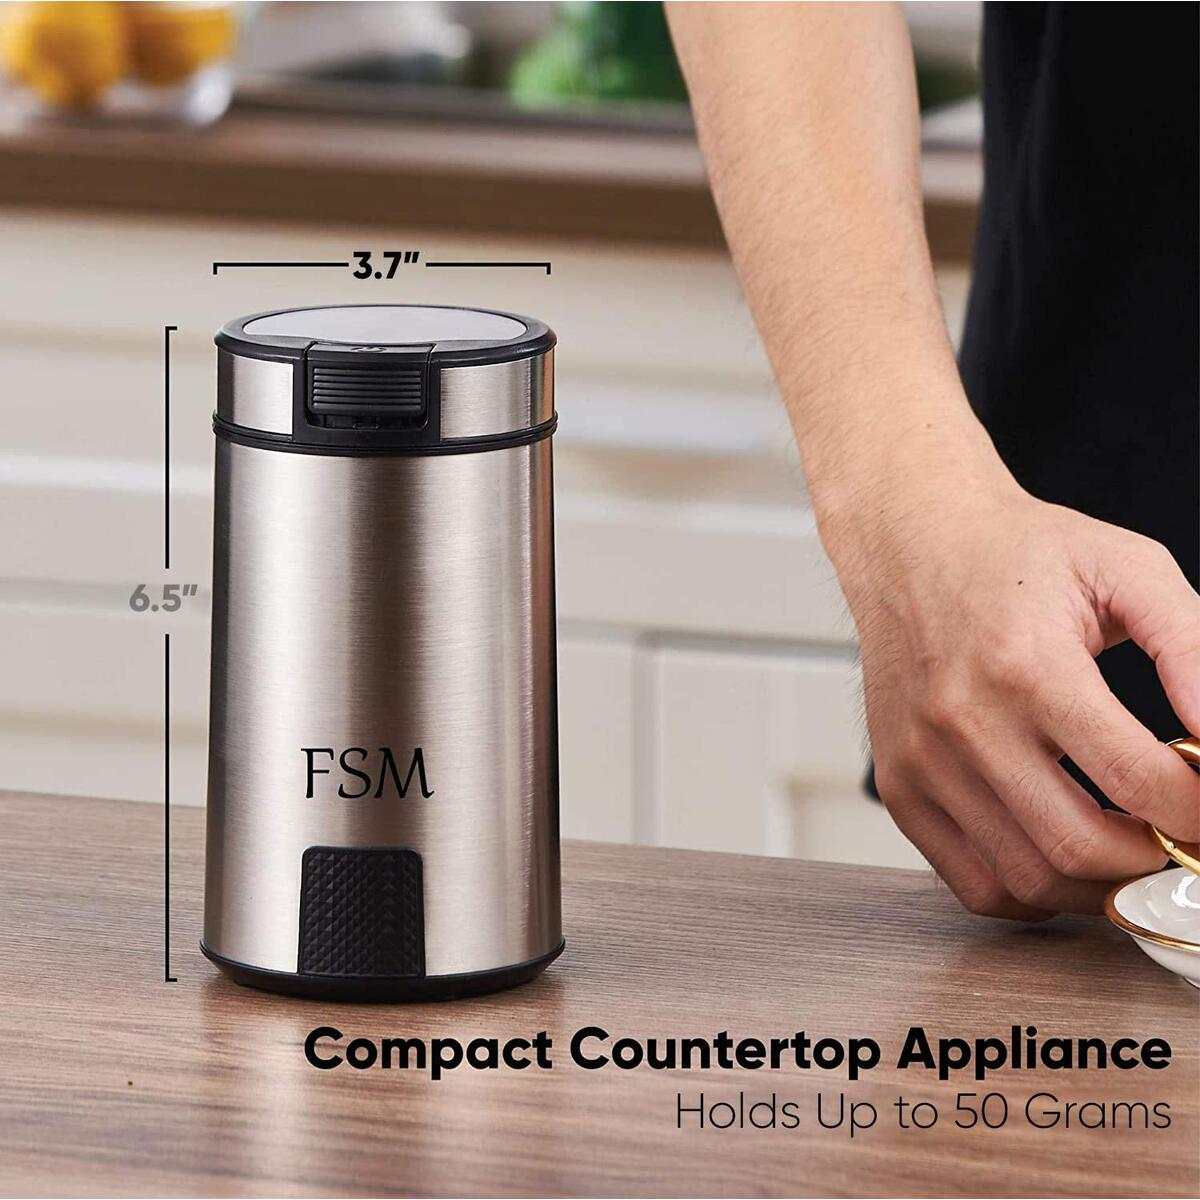 FSM Electric Coffee Grinder and Spice Mill with Safety Lock System – Rustproof Stainless Steel with Transparent Lid and Gripping Base – Grind Whole Beans, Seeds, Nuts and Herbs (1.76 oz Capacity)